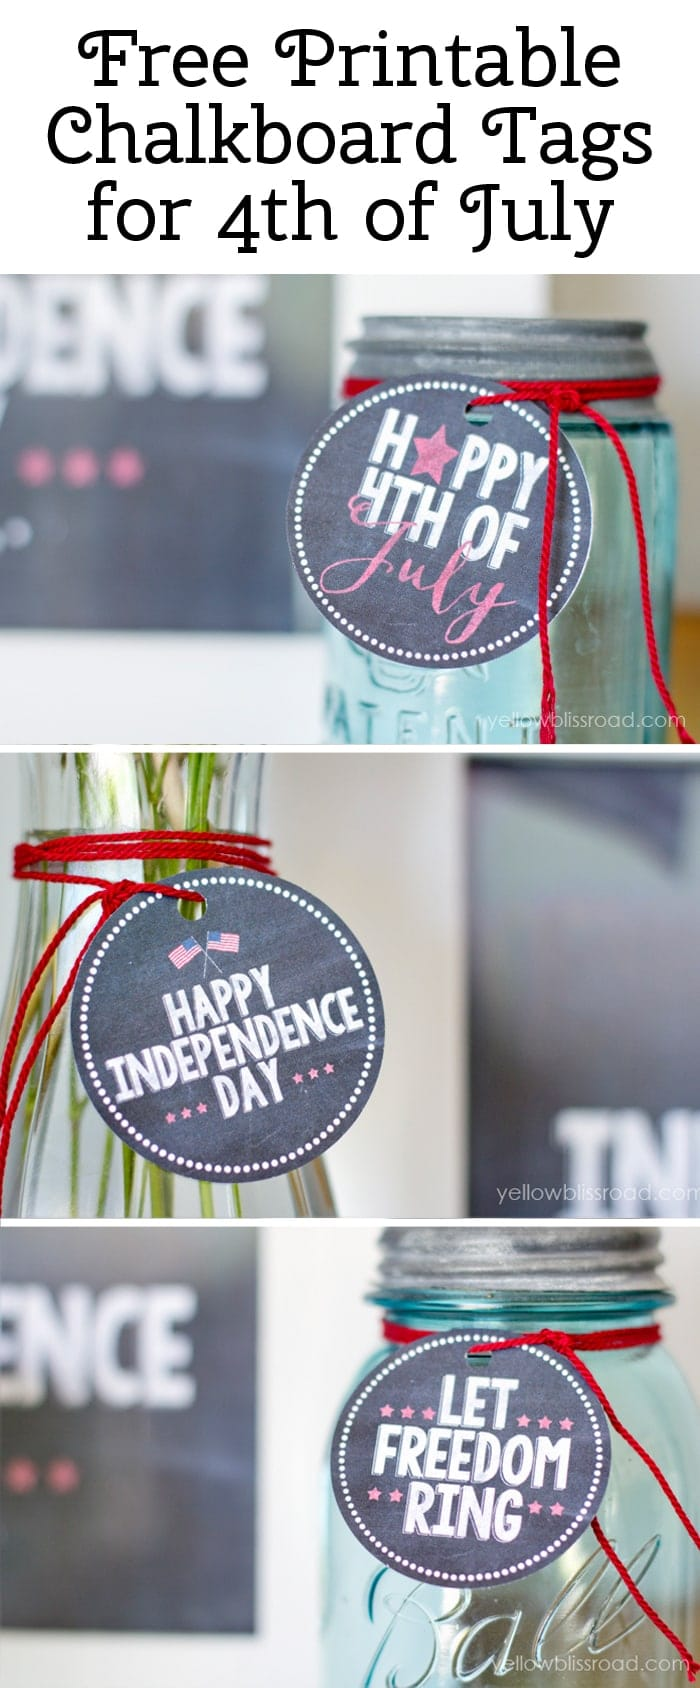 Free Printable Chalkboard tags for 4th of July